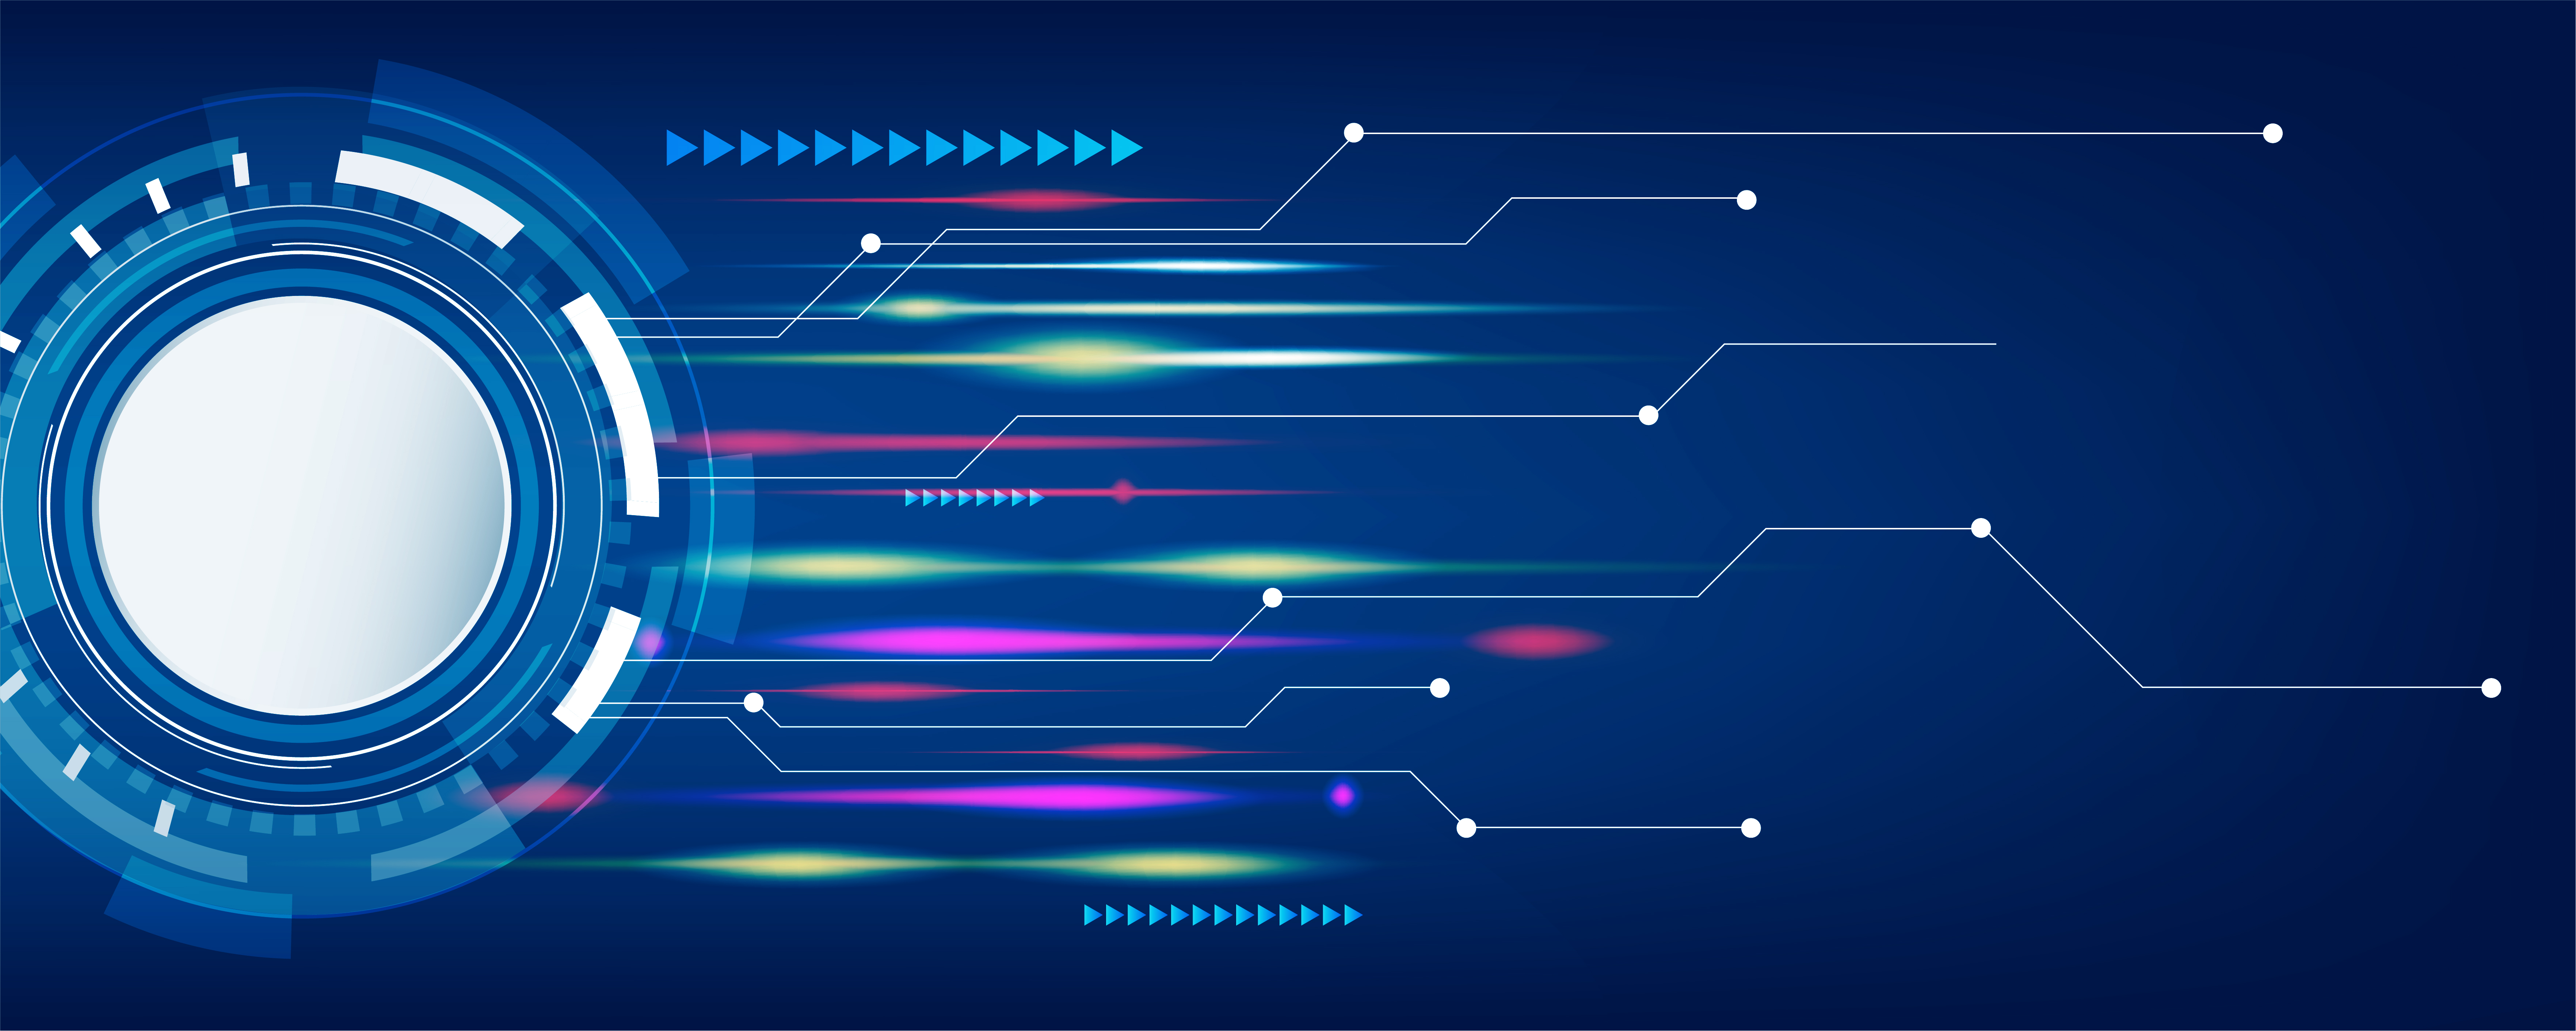 Dark Blue Technology And High Tech Abstract Background Download Free Vectors Clipart Graphics Vector Art